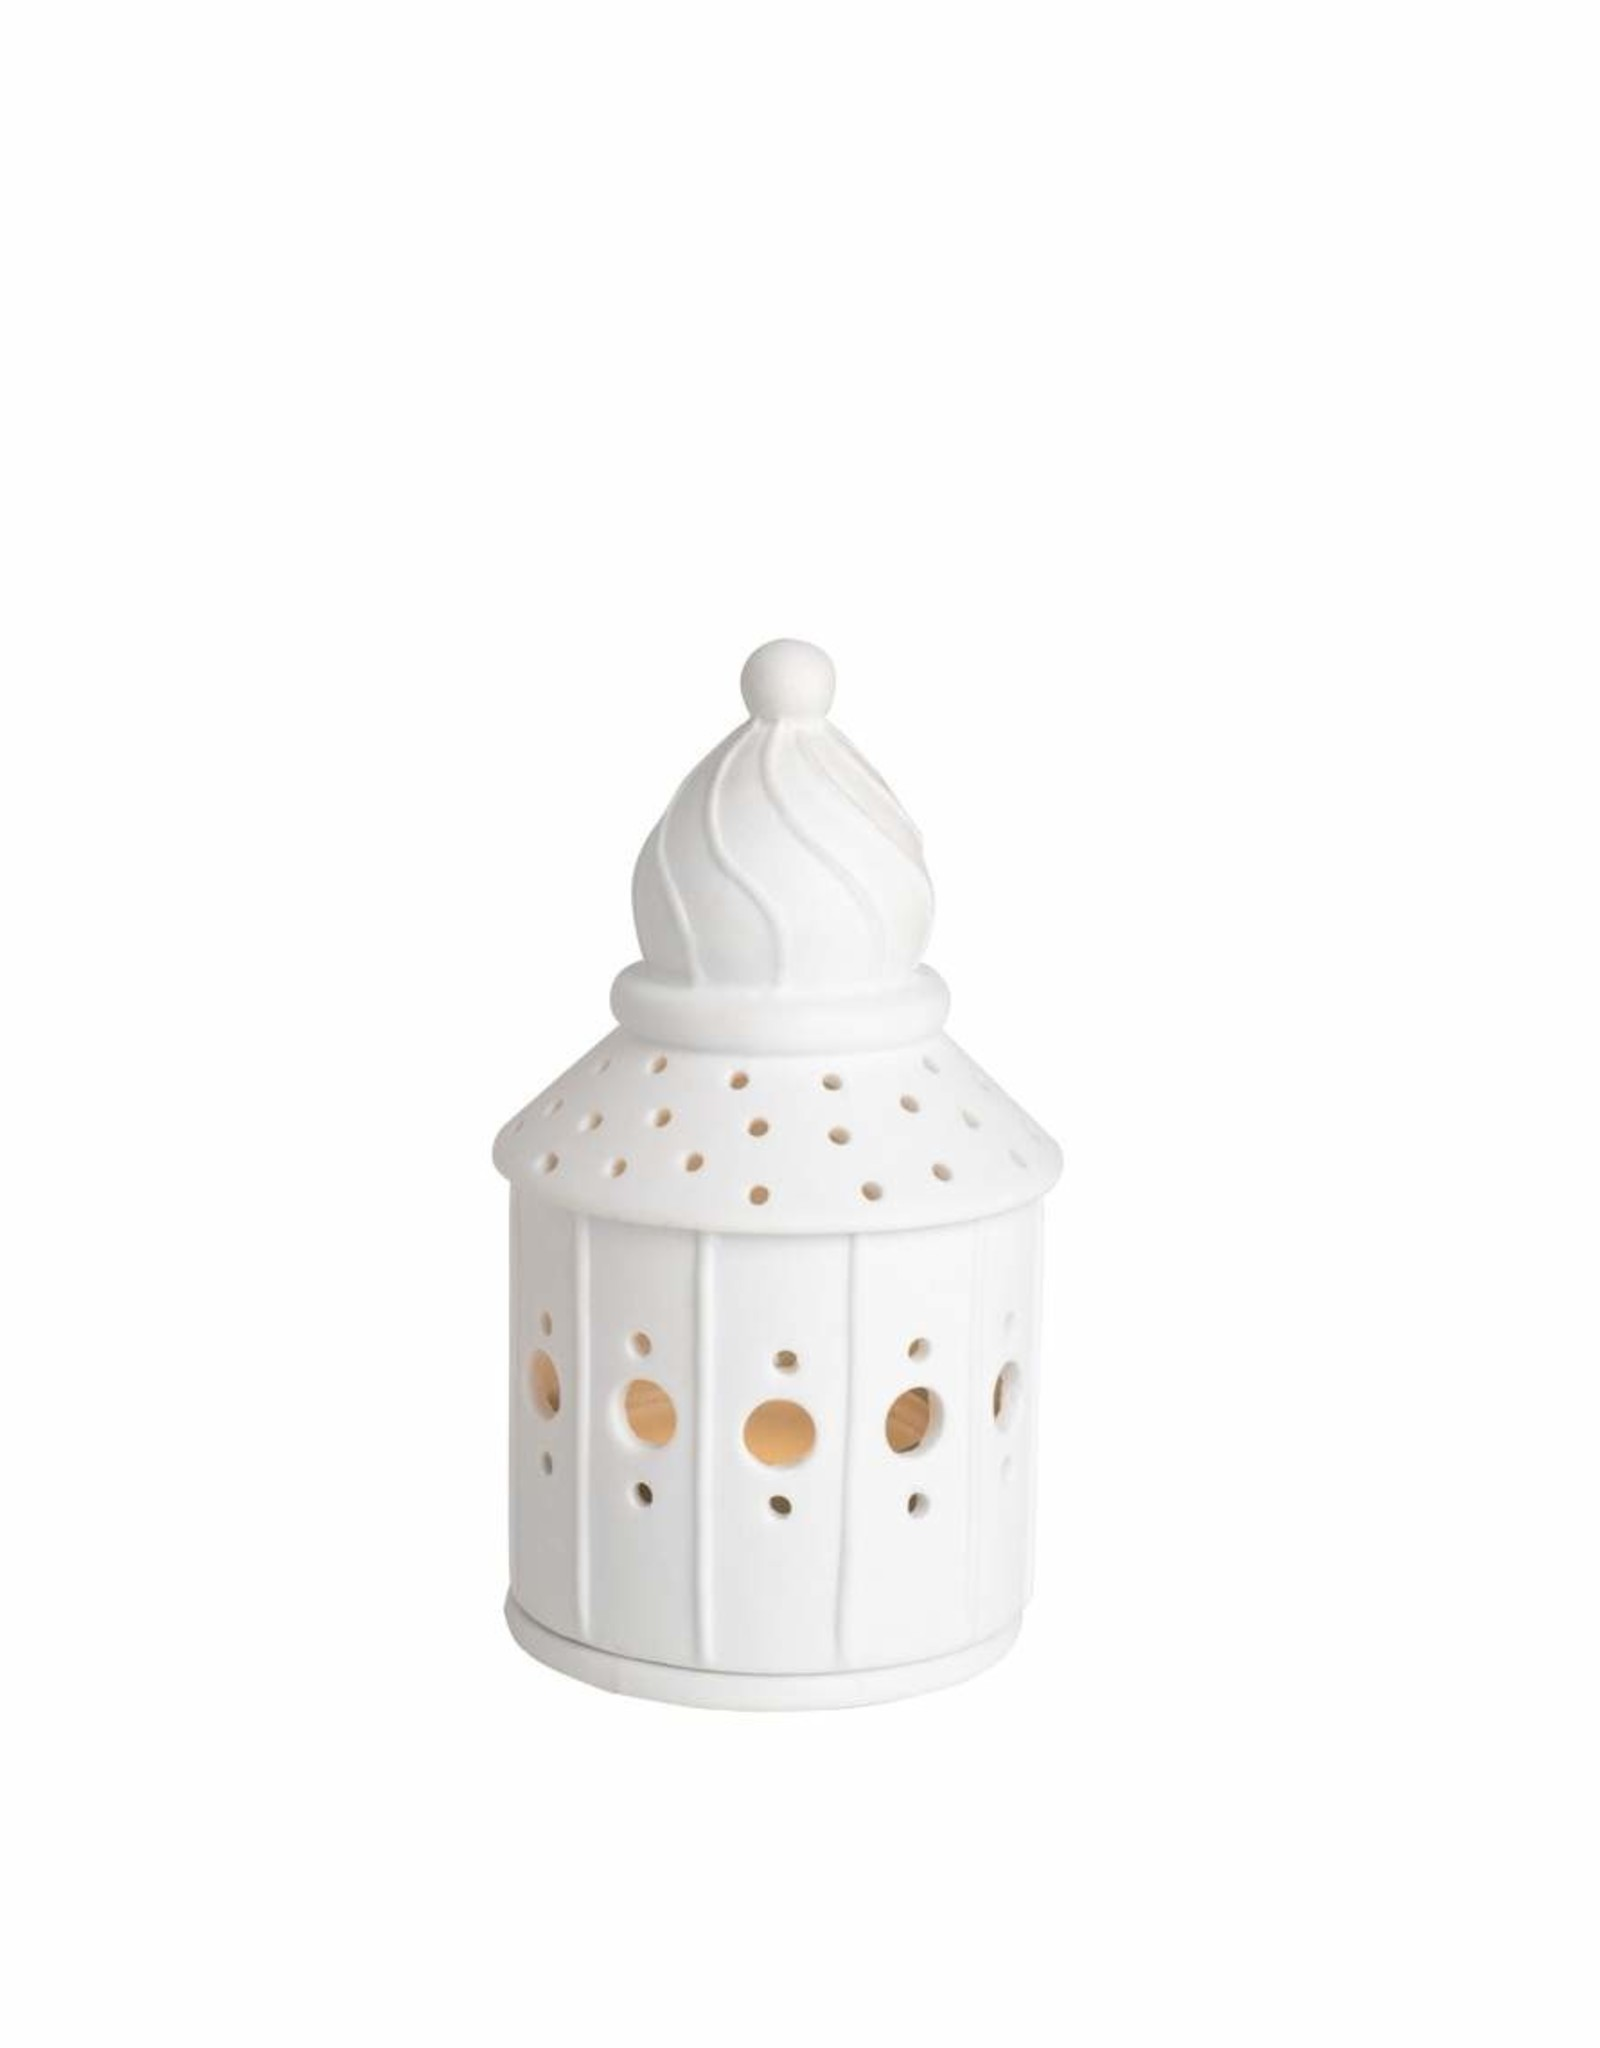 Rader Light house Confectionery Small